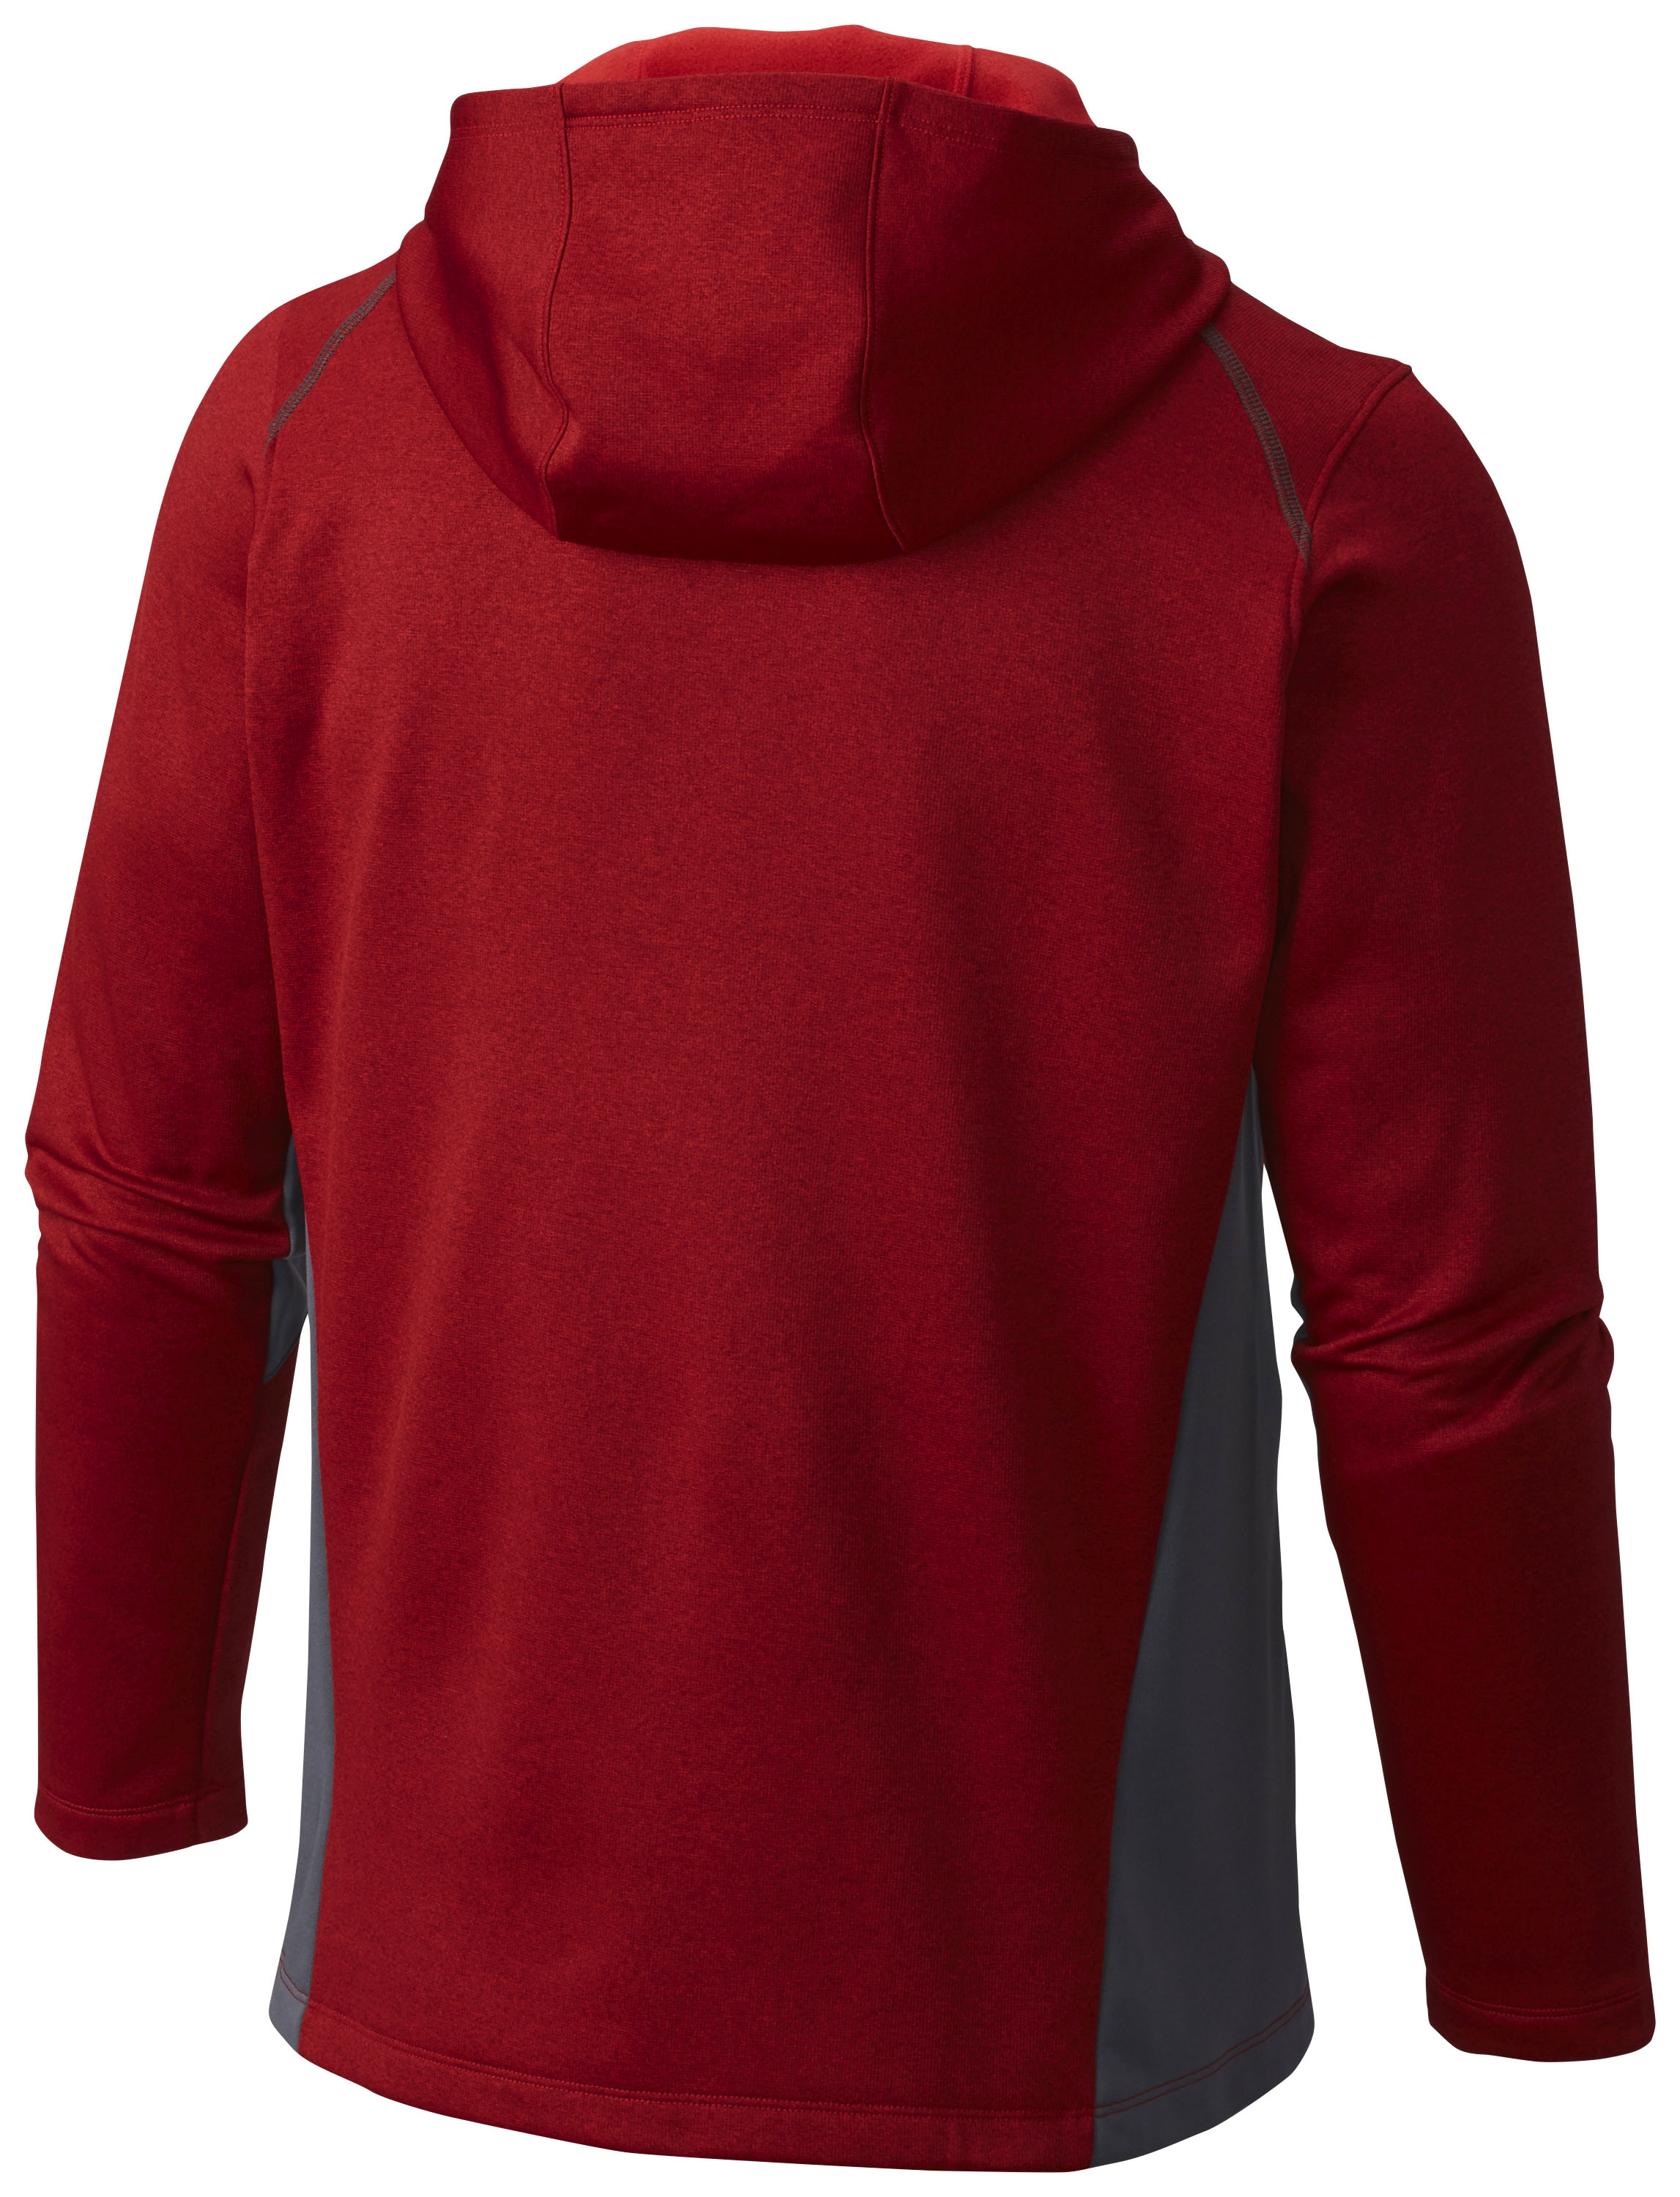 Alternative Image for the Clearance - Columbia Jackson Creek Full Zip Hoodie product